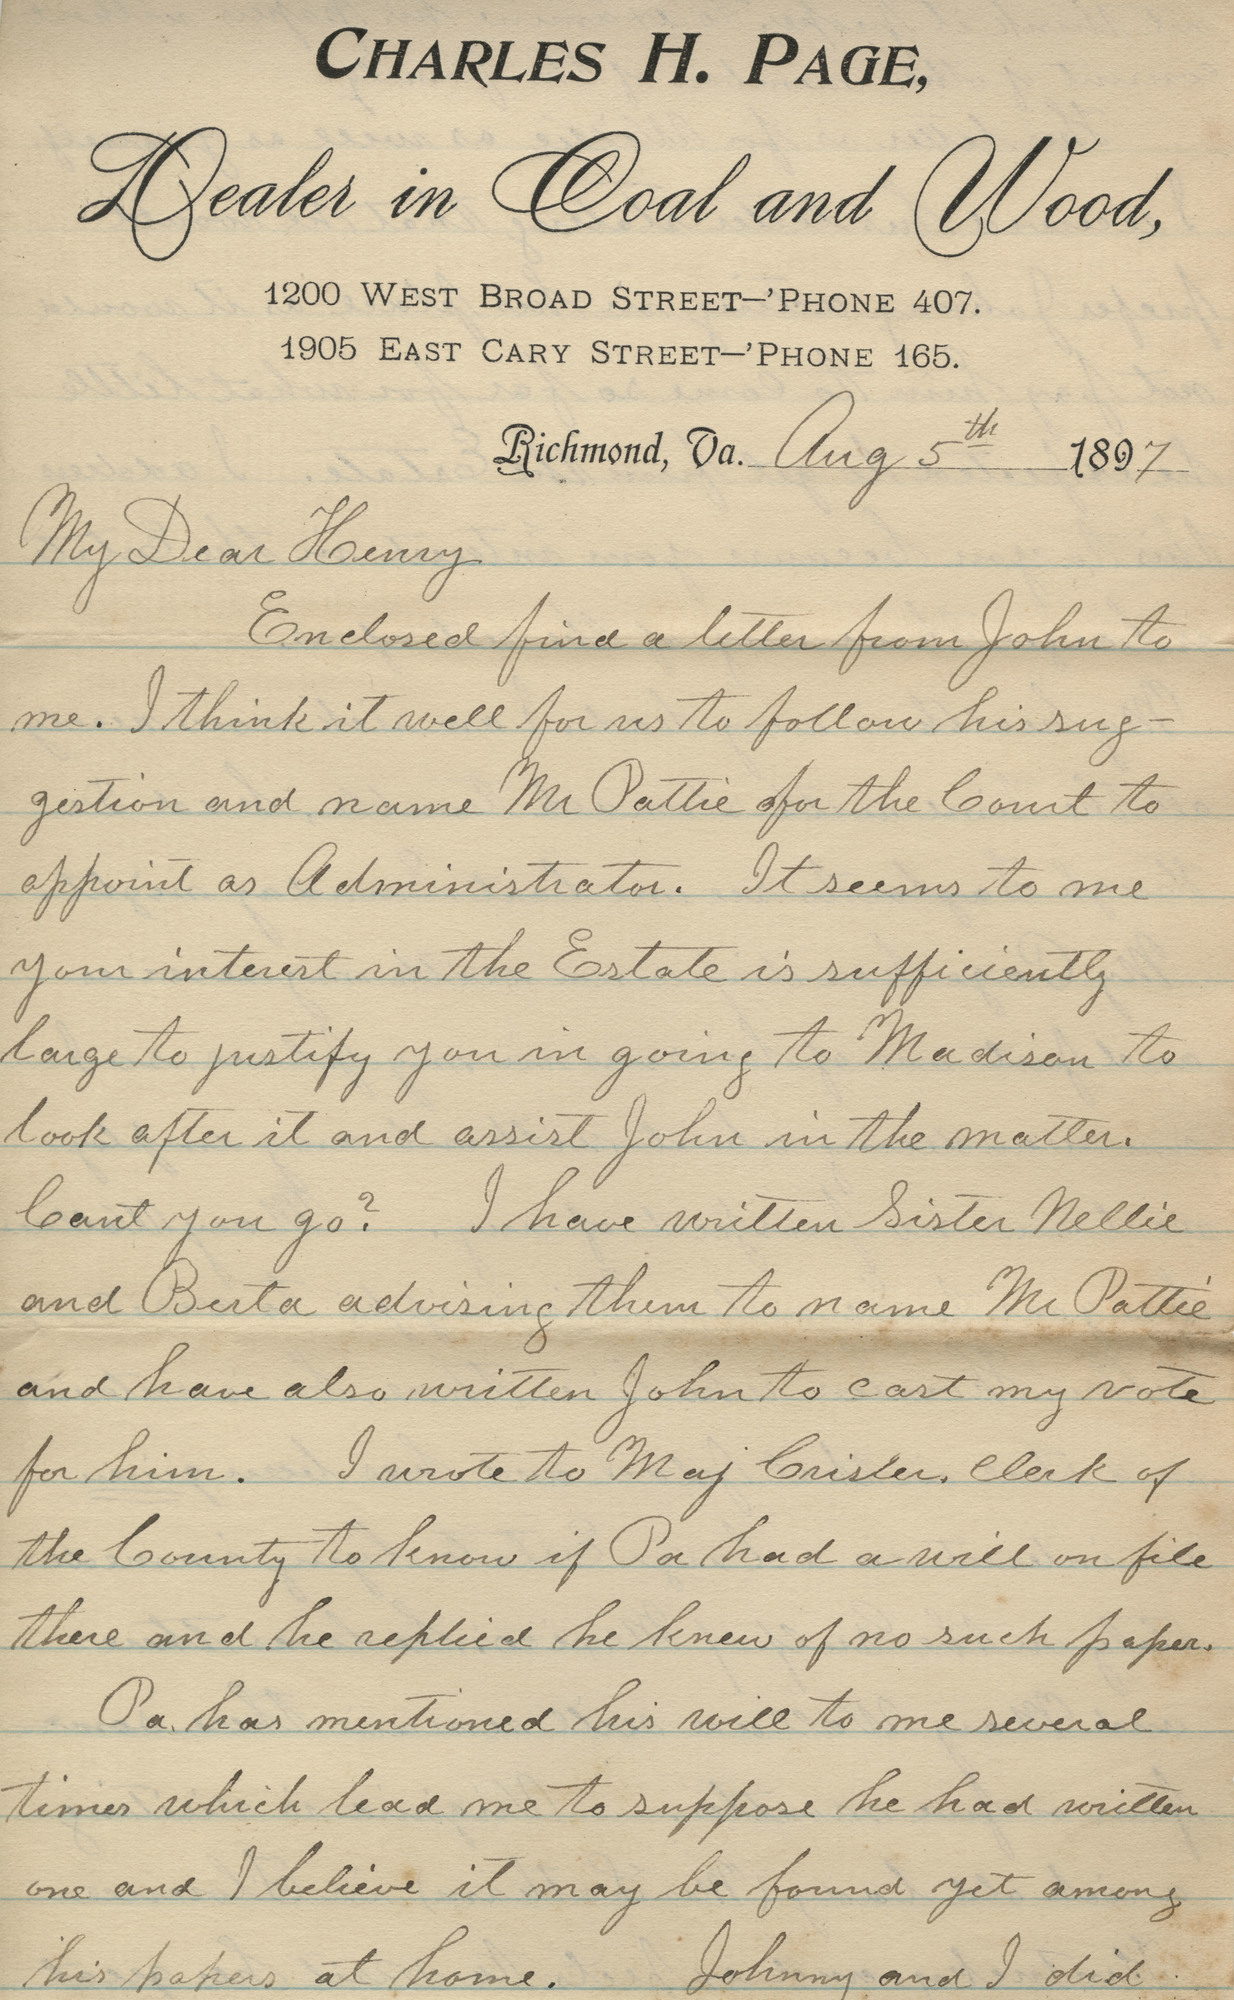 http://spec.lib.vt.edu/pickup/Omeka_upload/Ms2012-039_ConwayCatlett_F2_Letter_1897_0805a.jpg